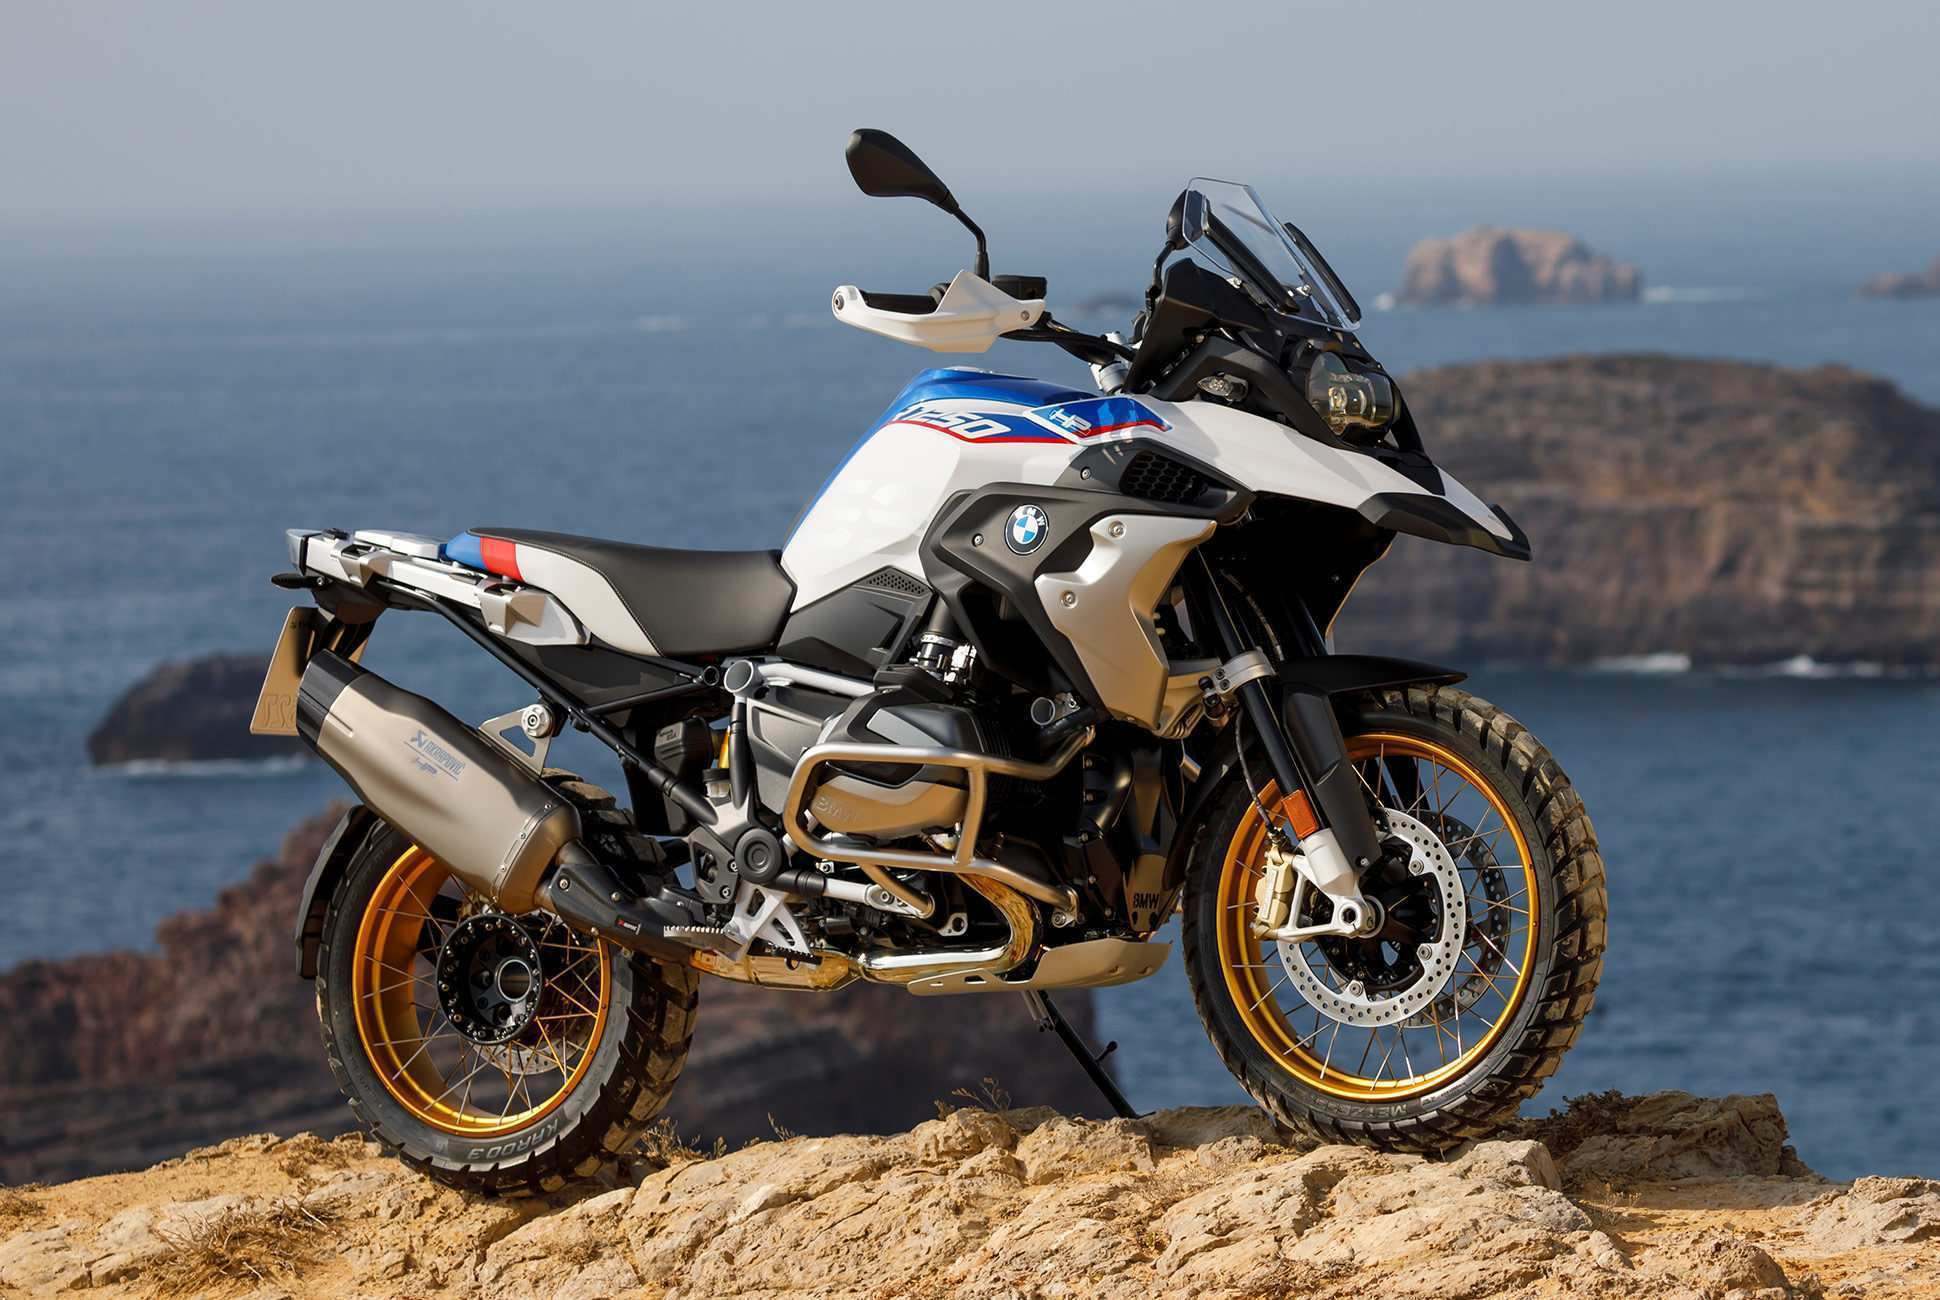 56 Concept of 2019 Bmw Gs Adventure Configurations with 2019 Bmw Gs Adventure